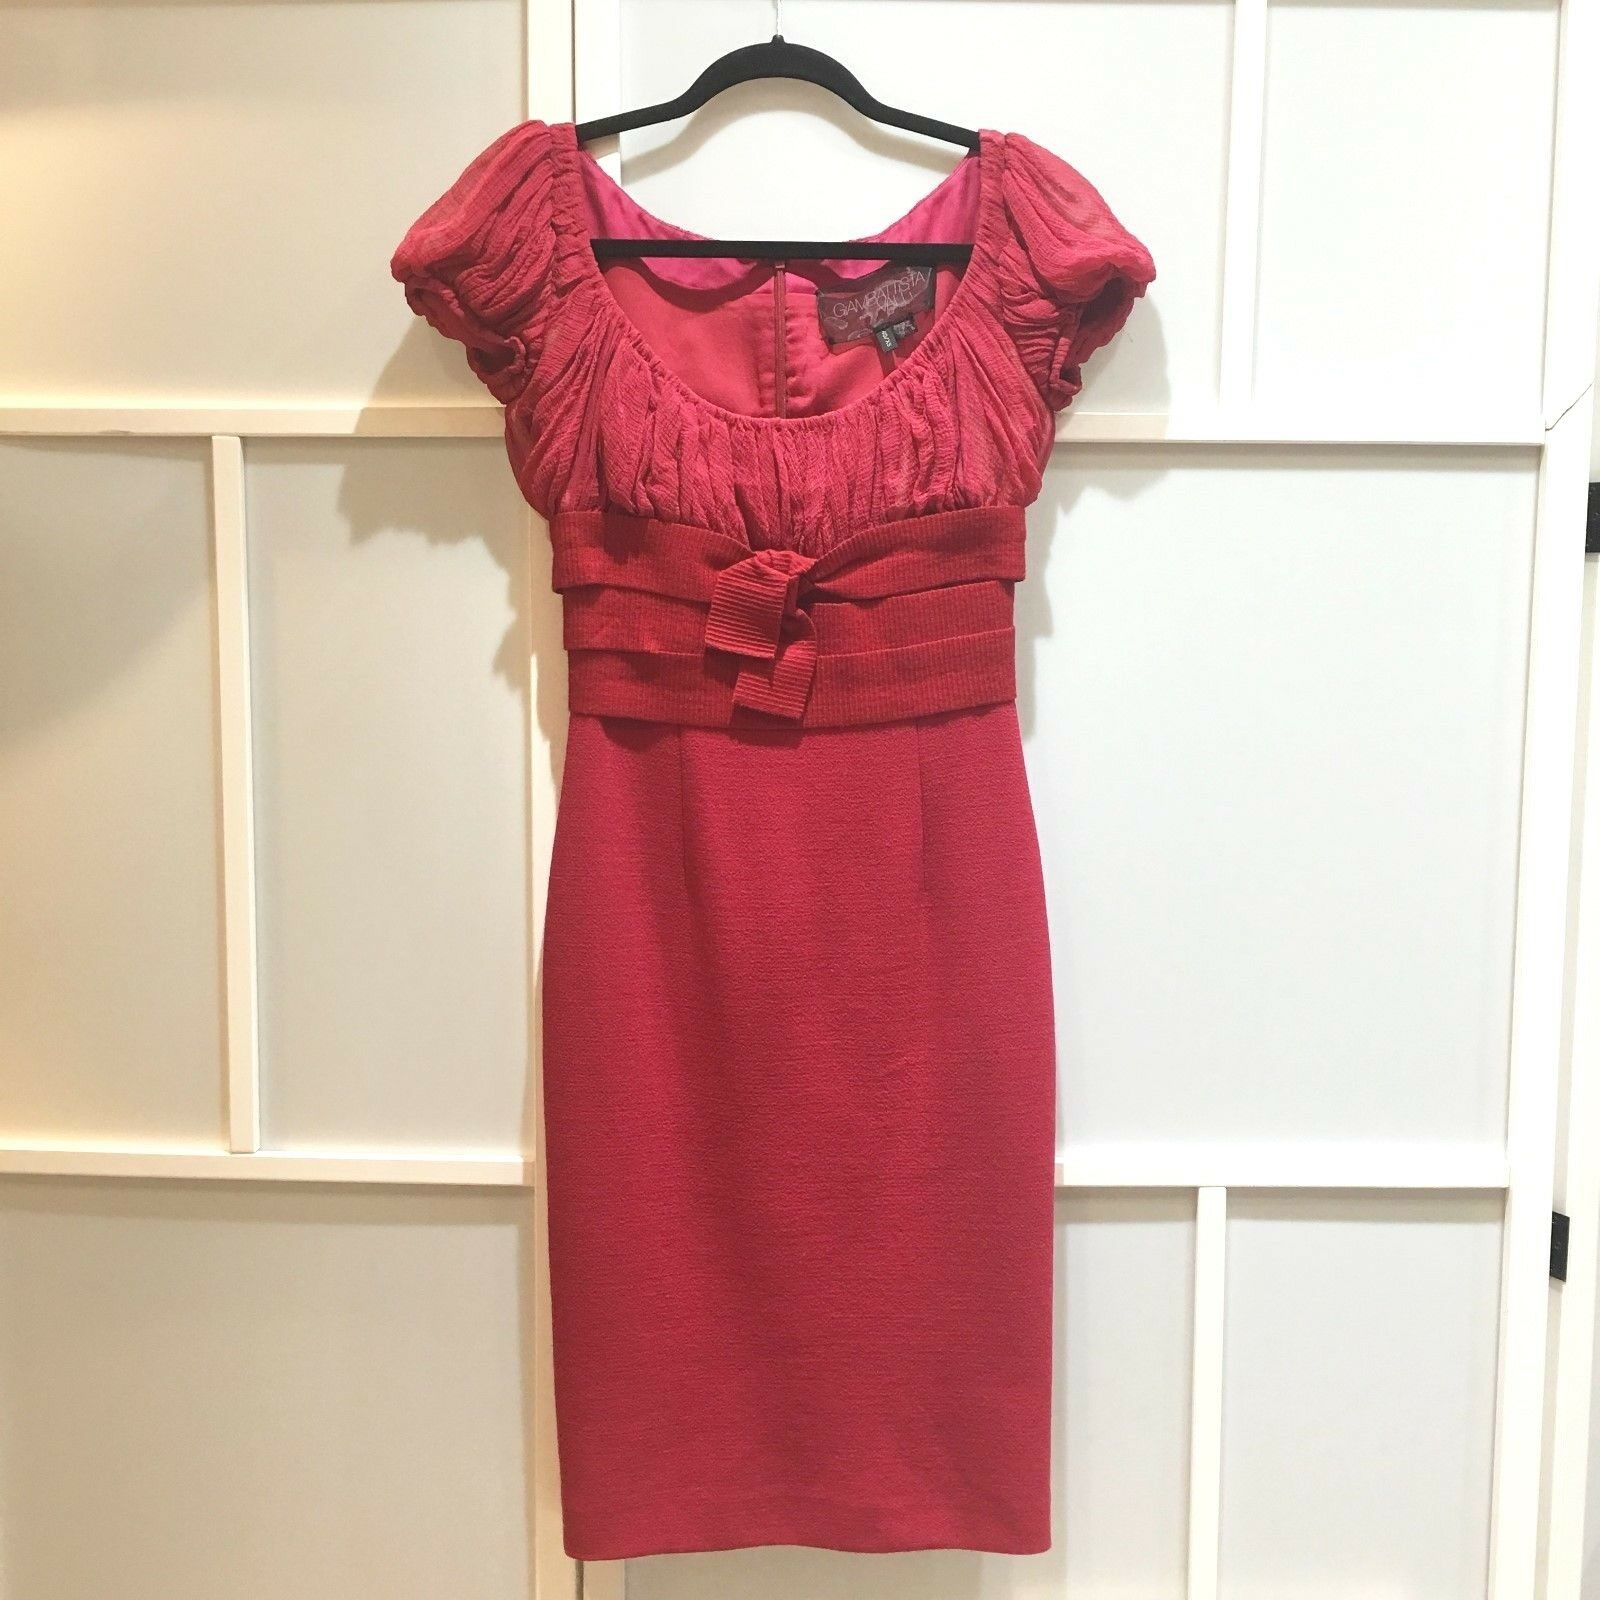 100% authentic Giambattista Valli red dress, size XS